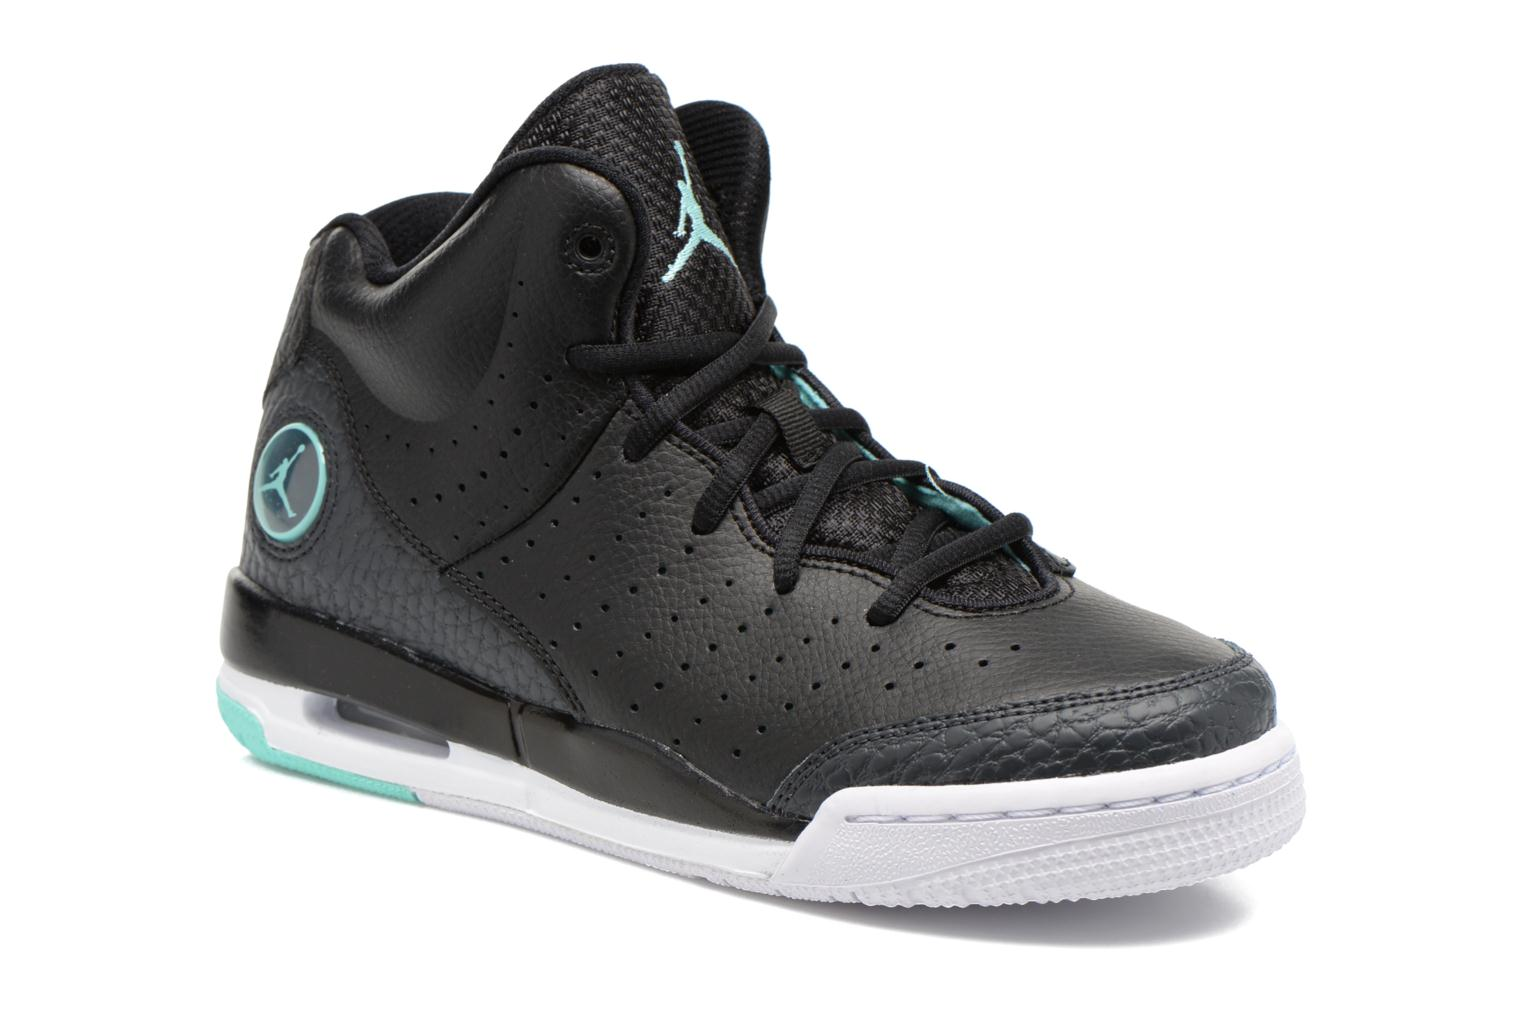 Jordan Flight Tradition Bg Black/Hyper Turq-Anthrct-White